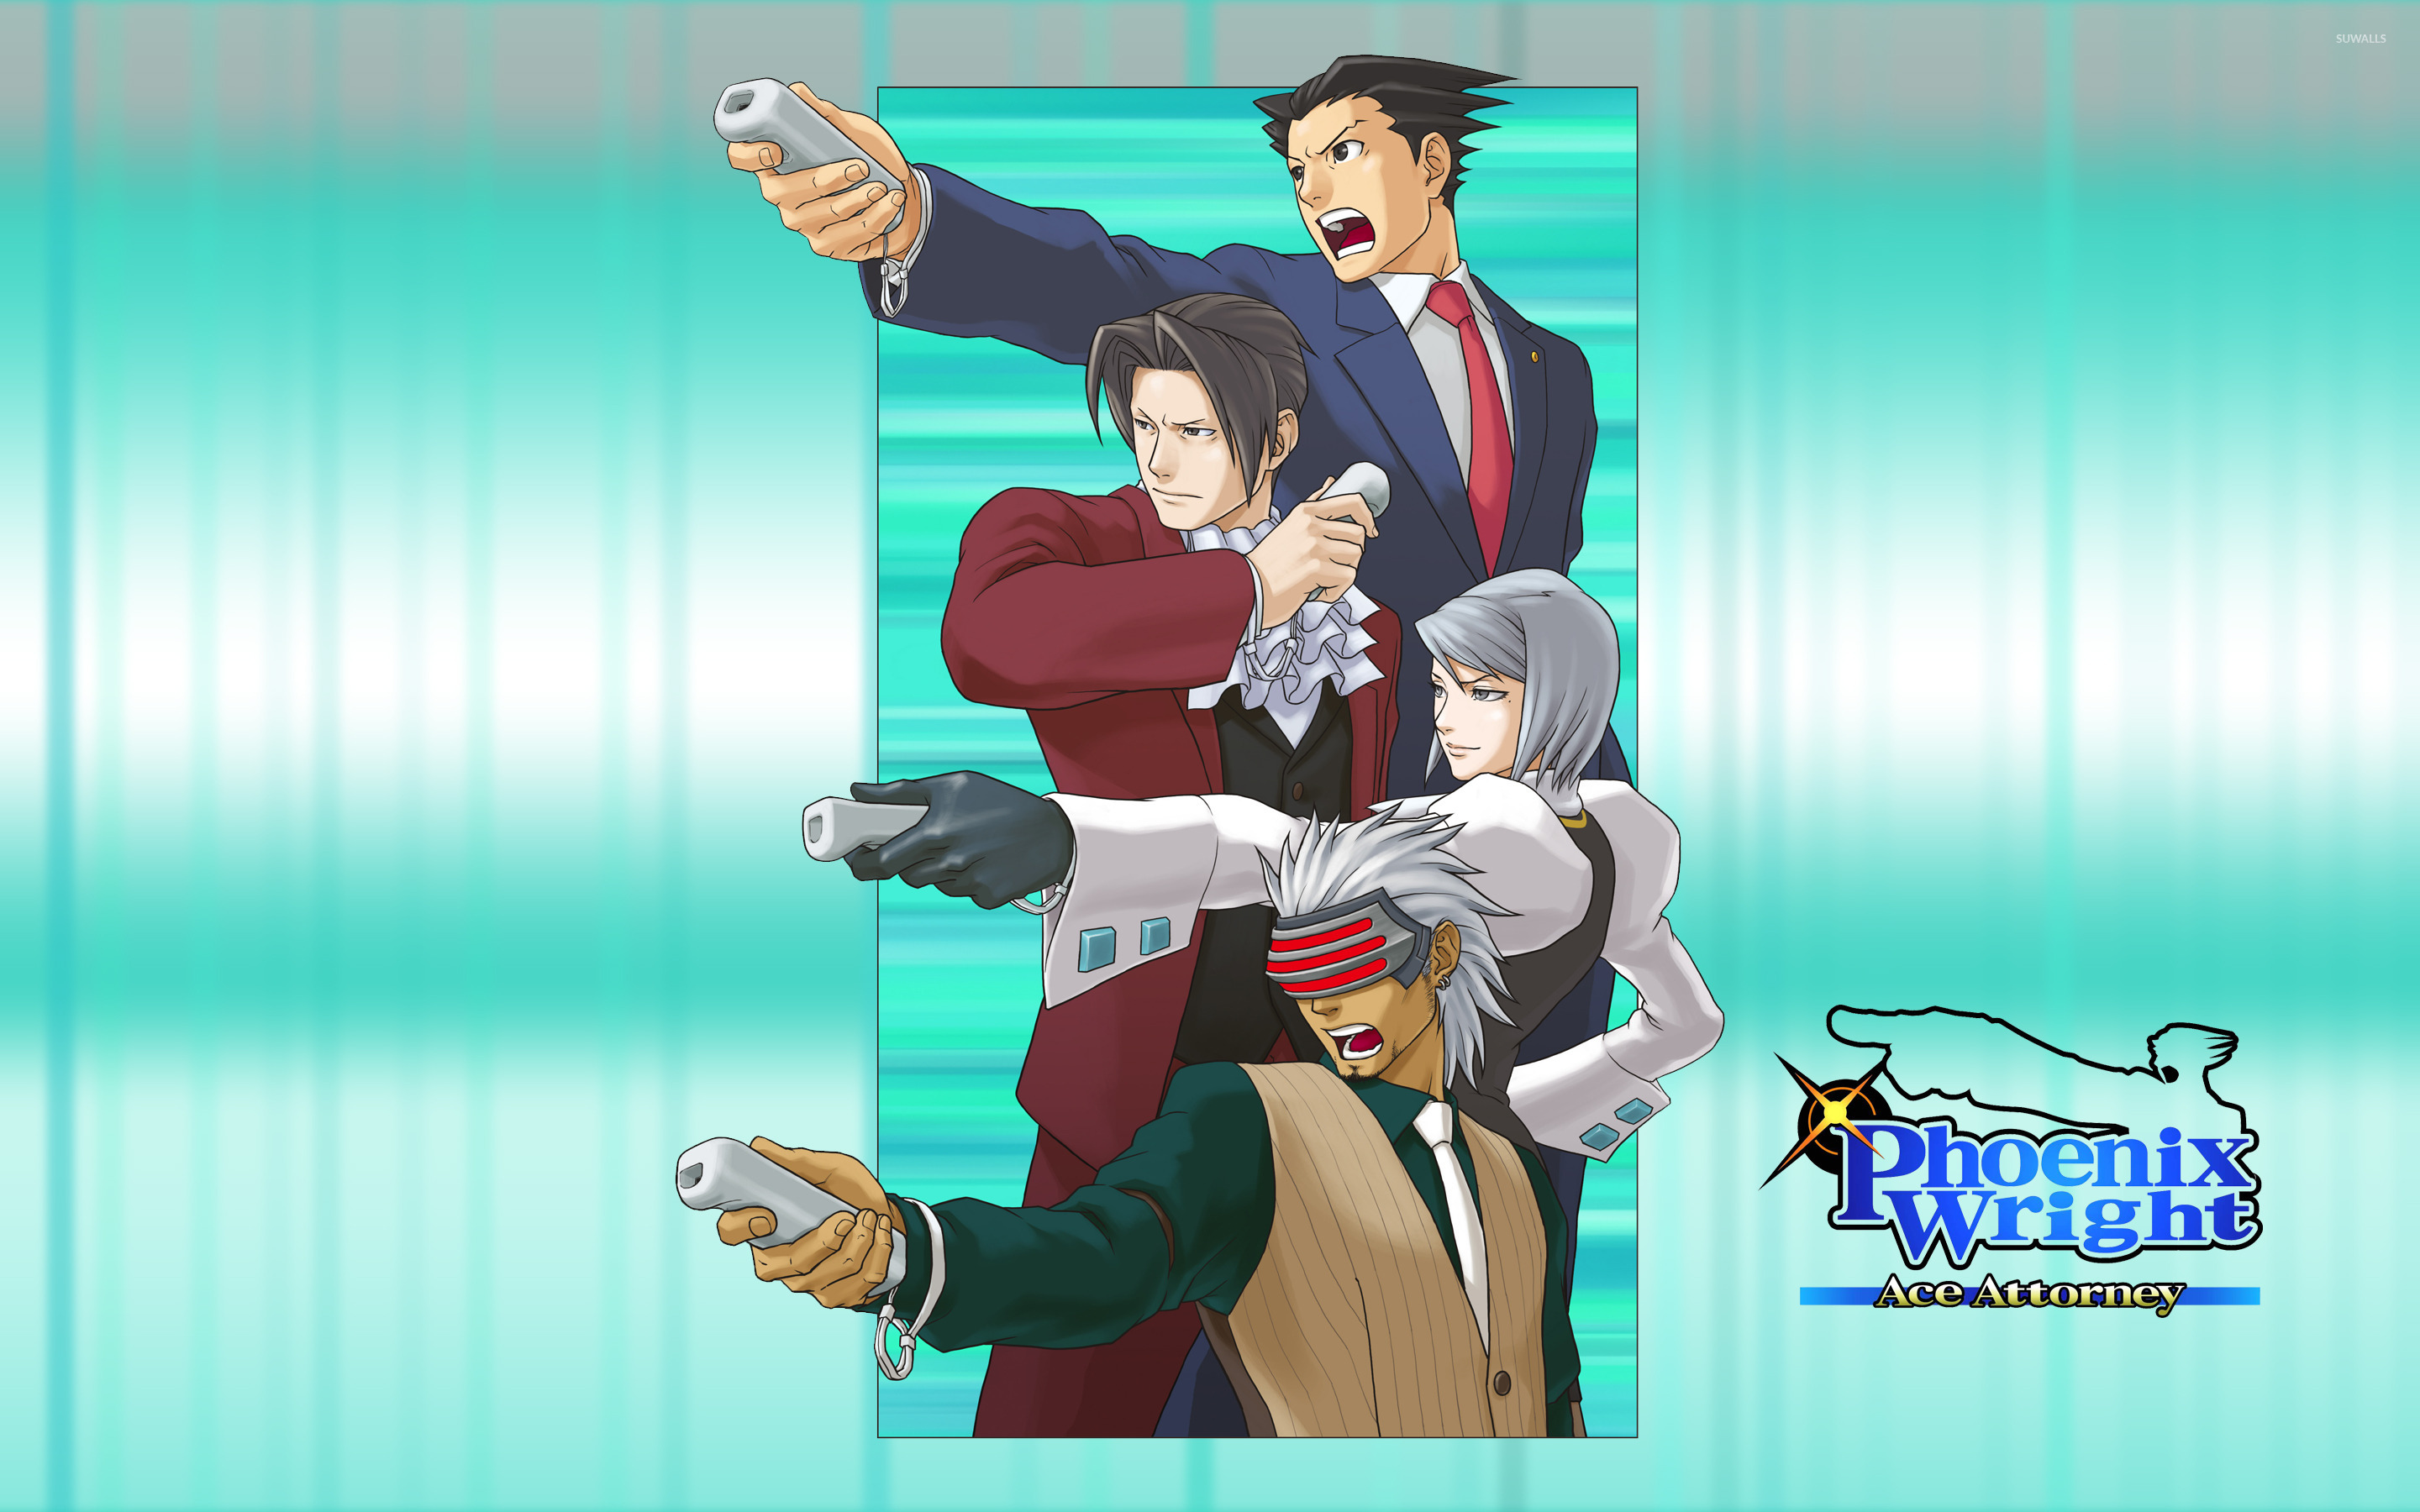 Free Download Phoenix Wright Ace Attorney Wallpaper Game